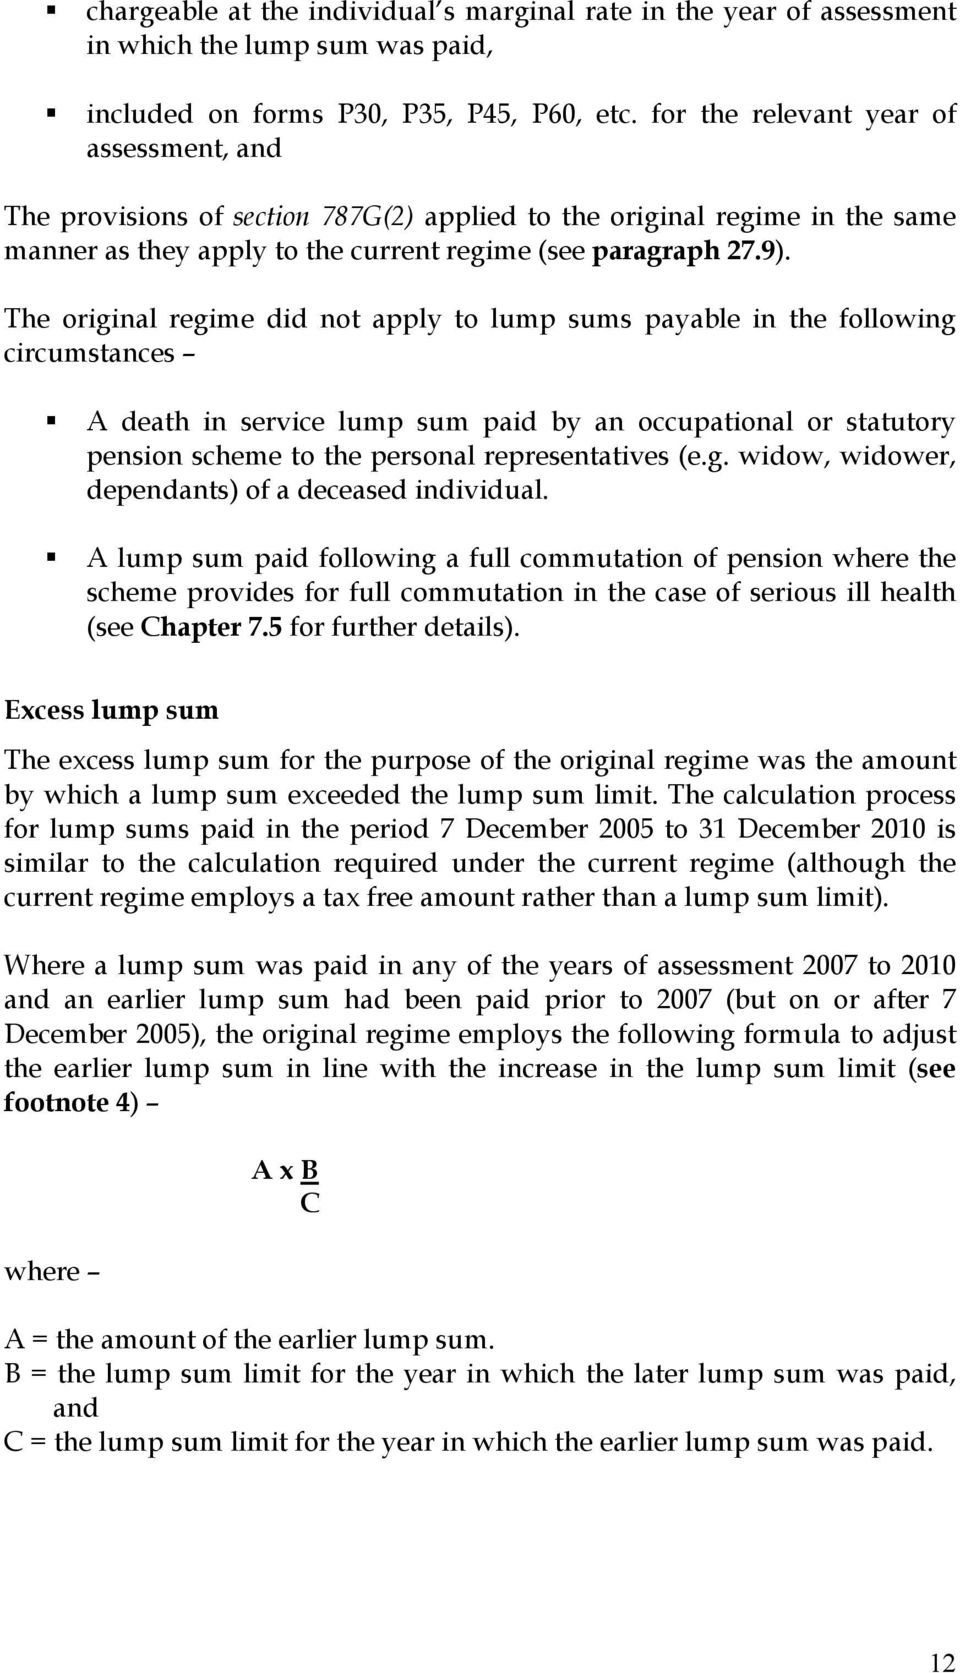 The original regime did not apply to lump sums payable in the following circumstances A death in service lump sum paid by an occupational or statutory pension scheme to the personal representatives